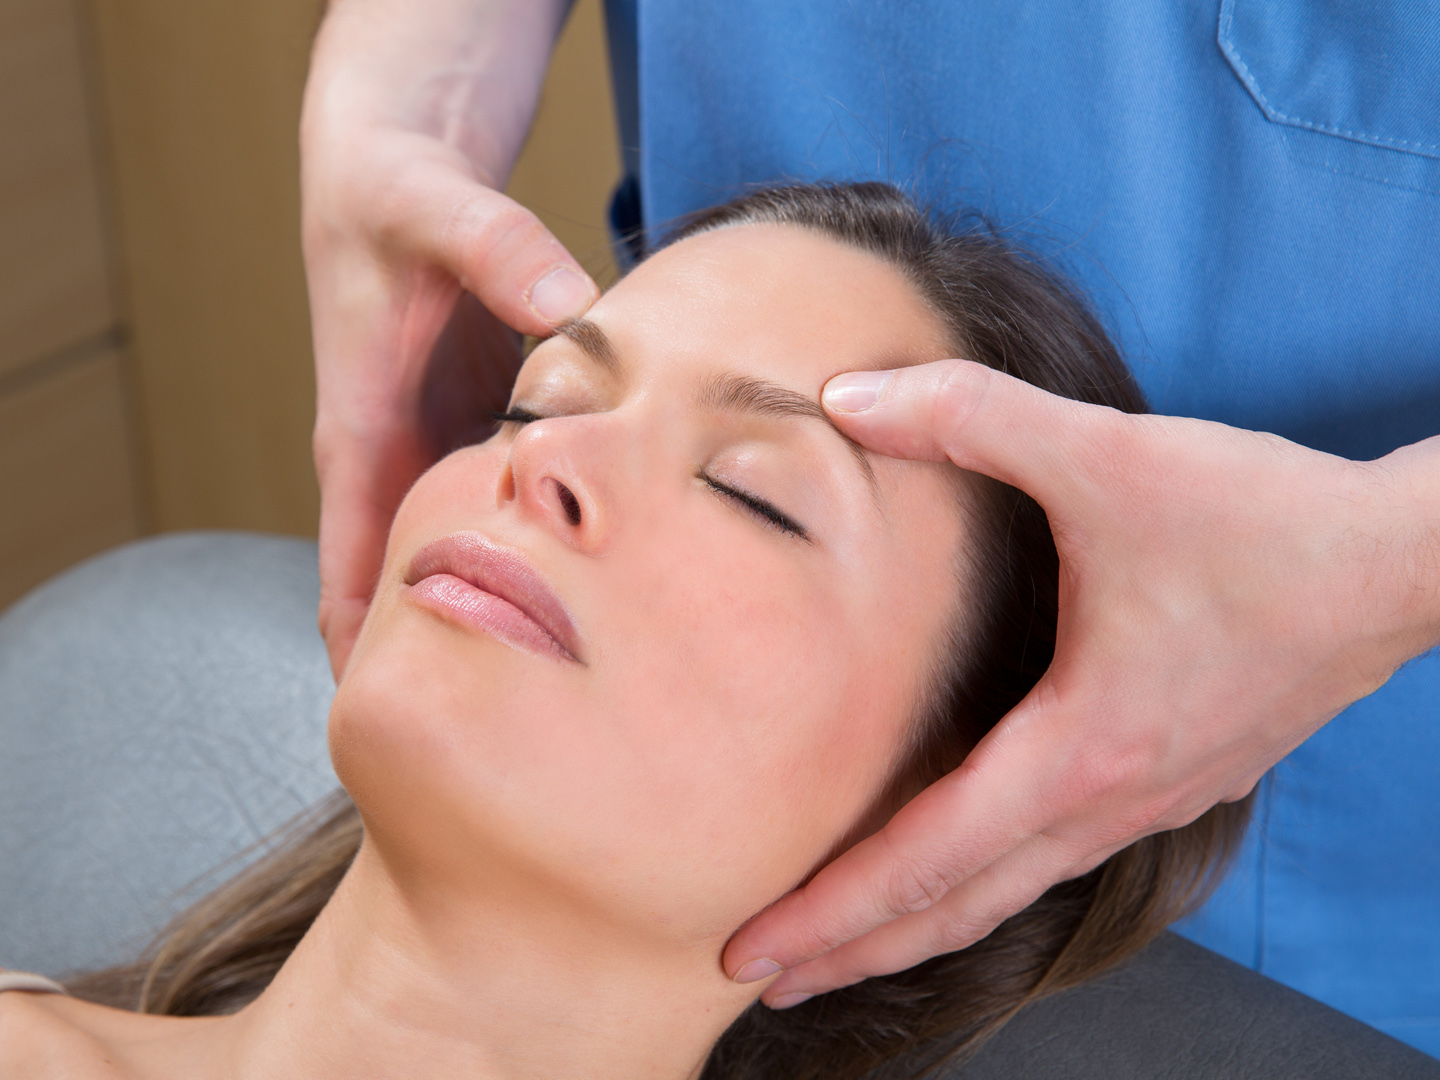 Cranial Therapy: Healing Hands on Your Head? - DrWeil.com